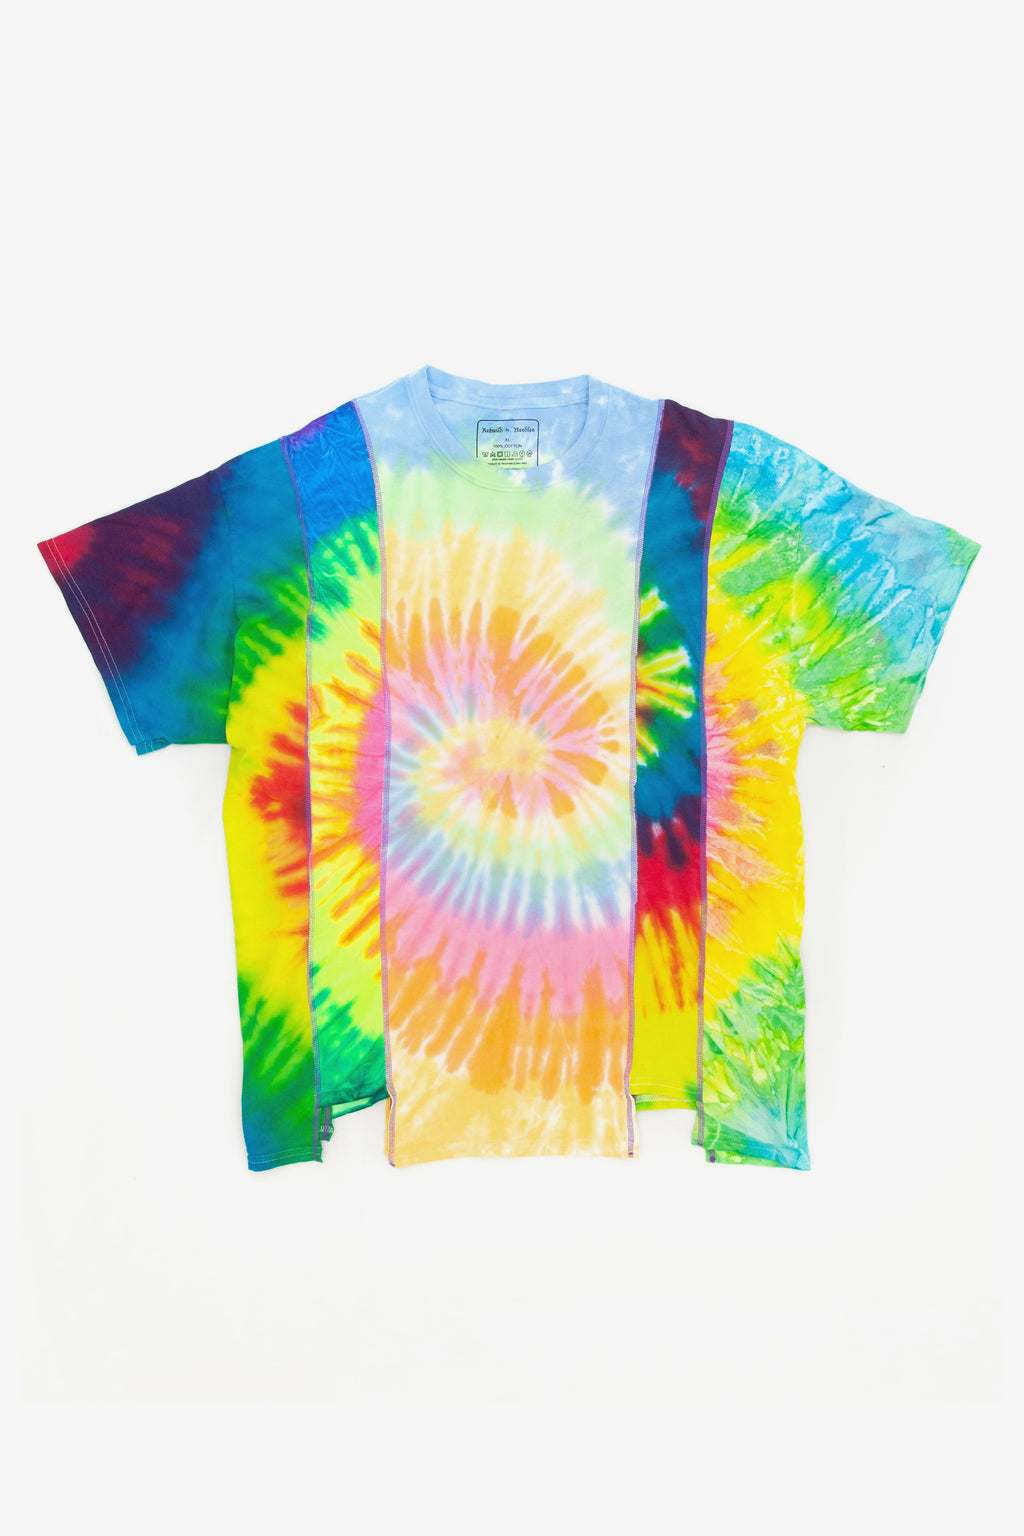 Needles Rebuild 5 cuts tie dye tee - XL 1